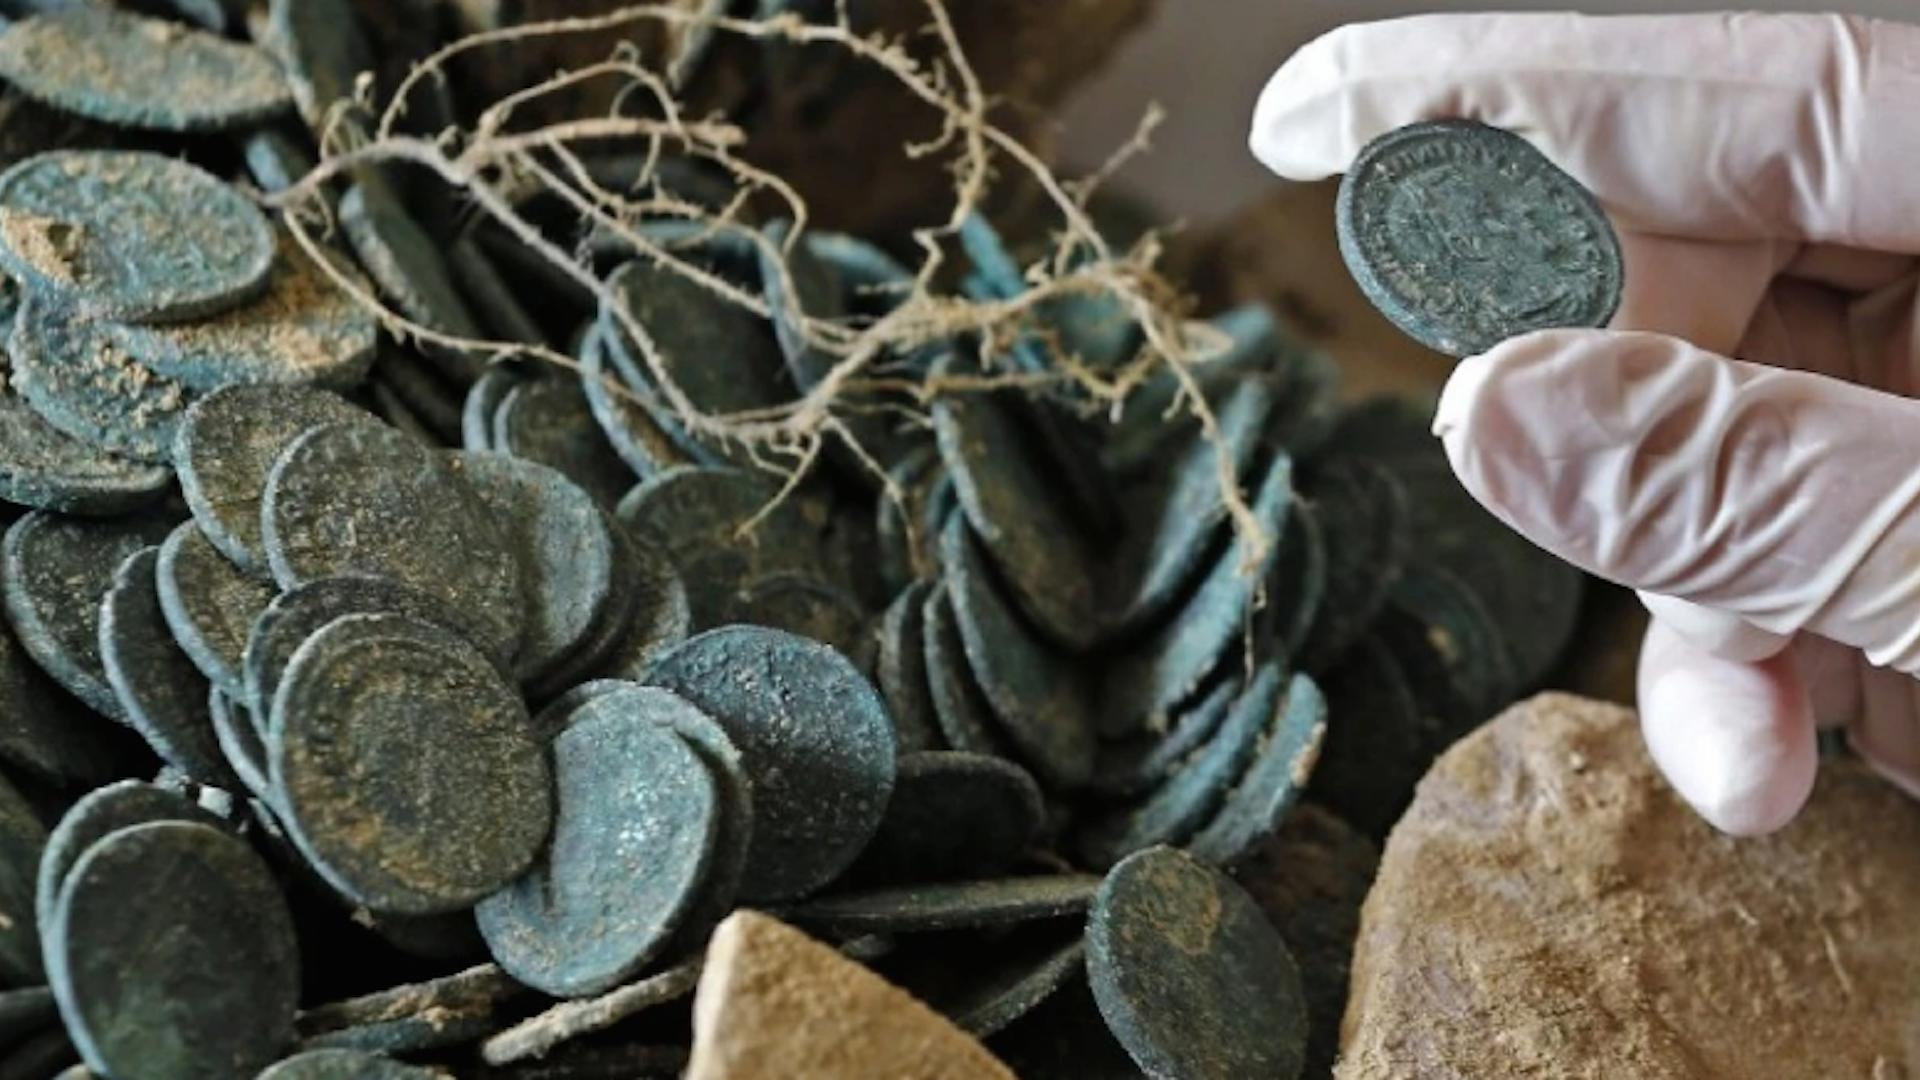 Construction workers in Spain unearth 1,300 pound trove of ancient Roman coins